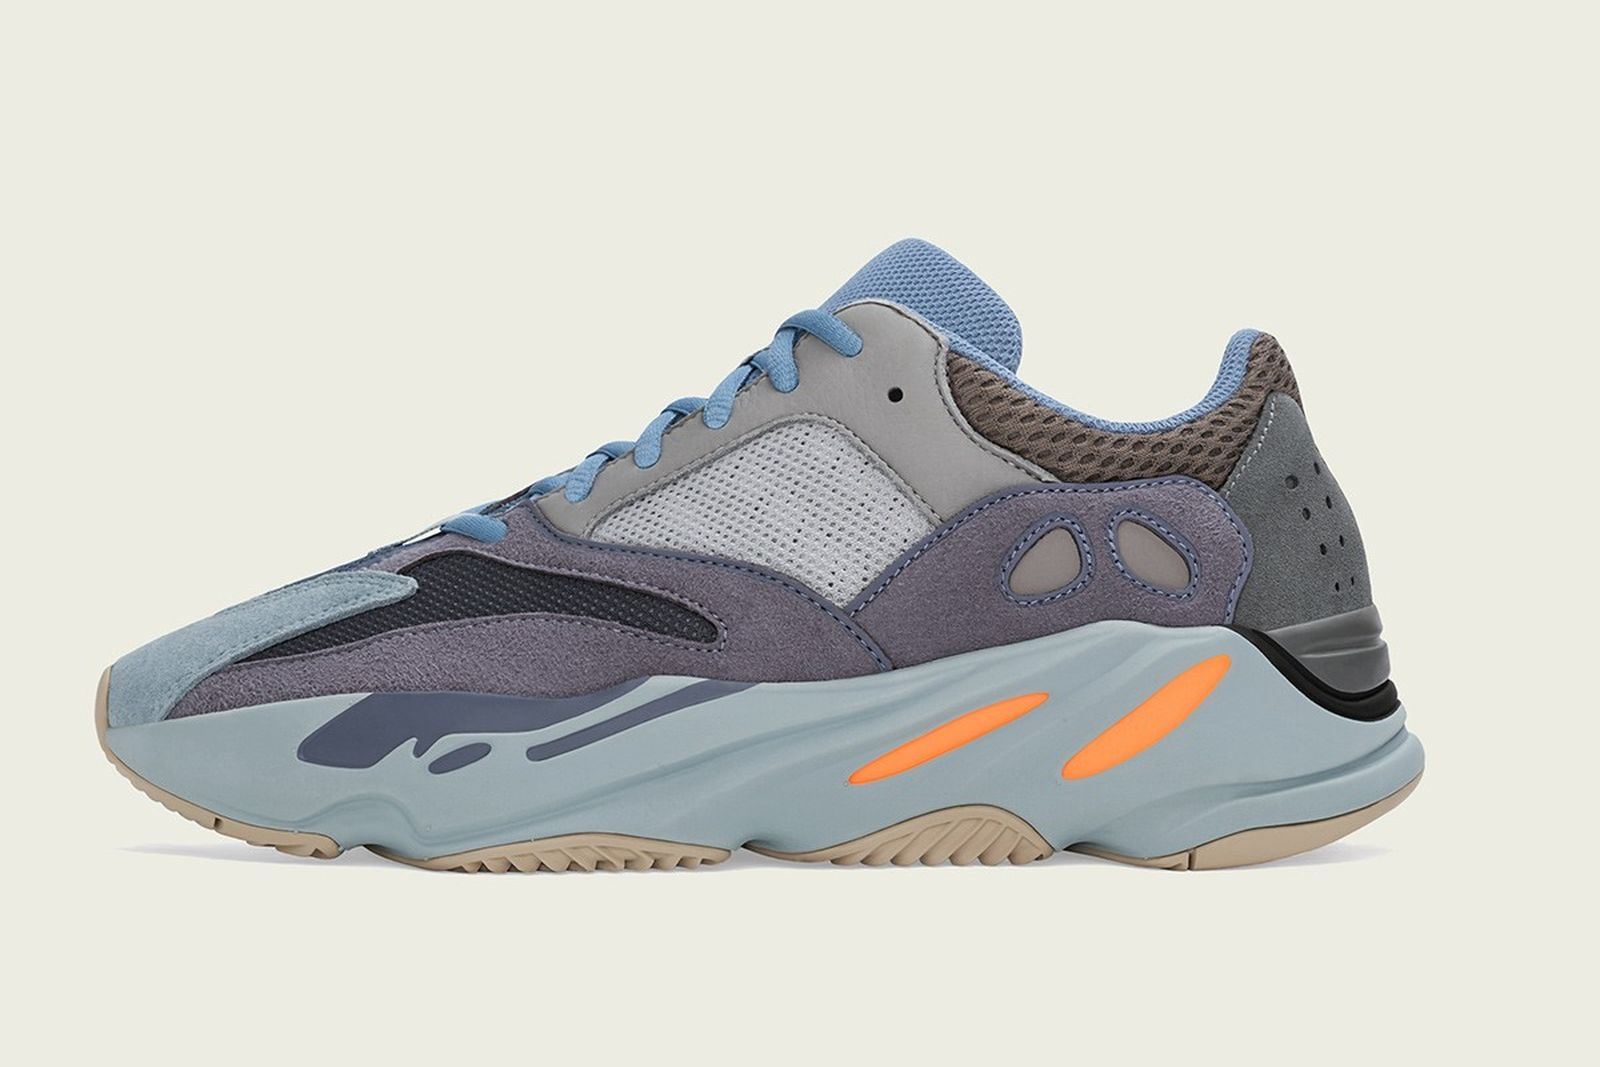 adidas-yeezy-boost-700-carbon-blue-release-date-price-021